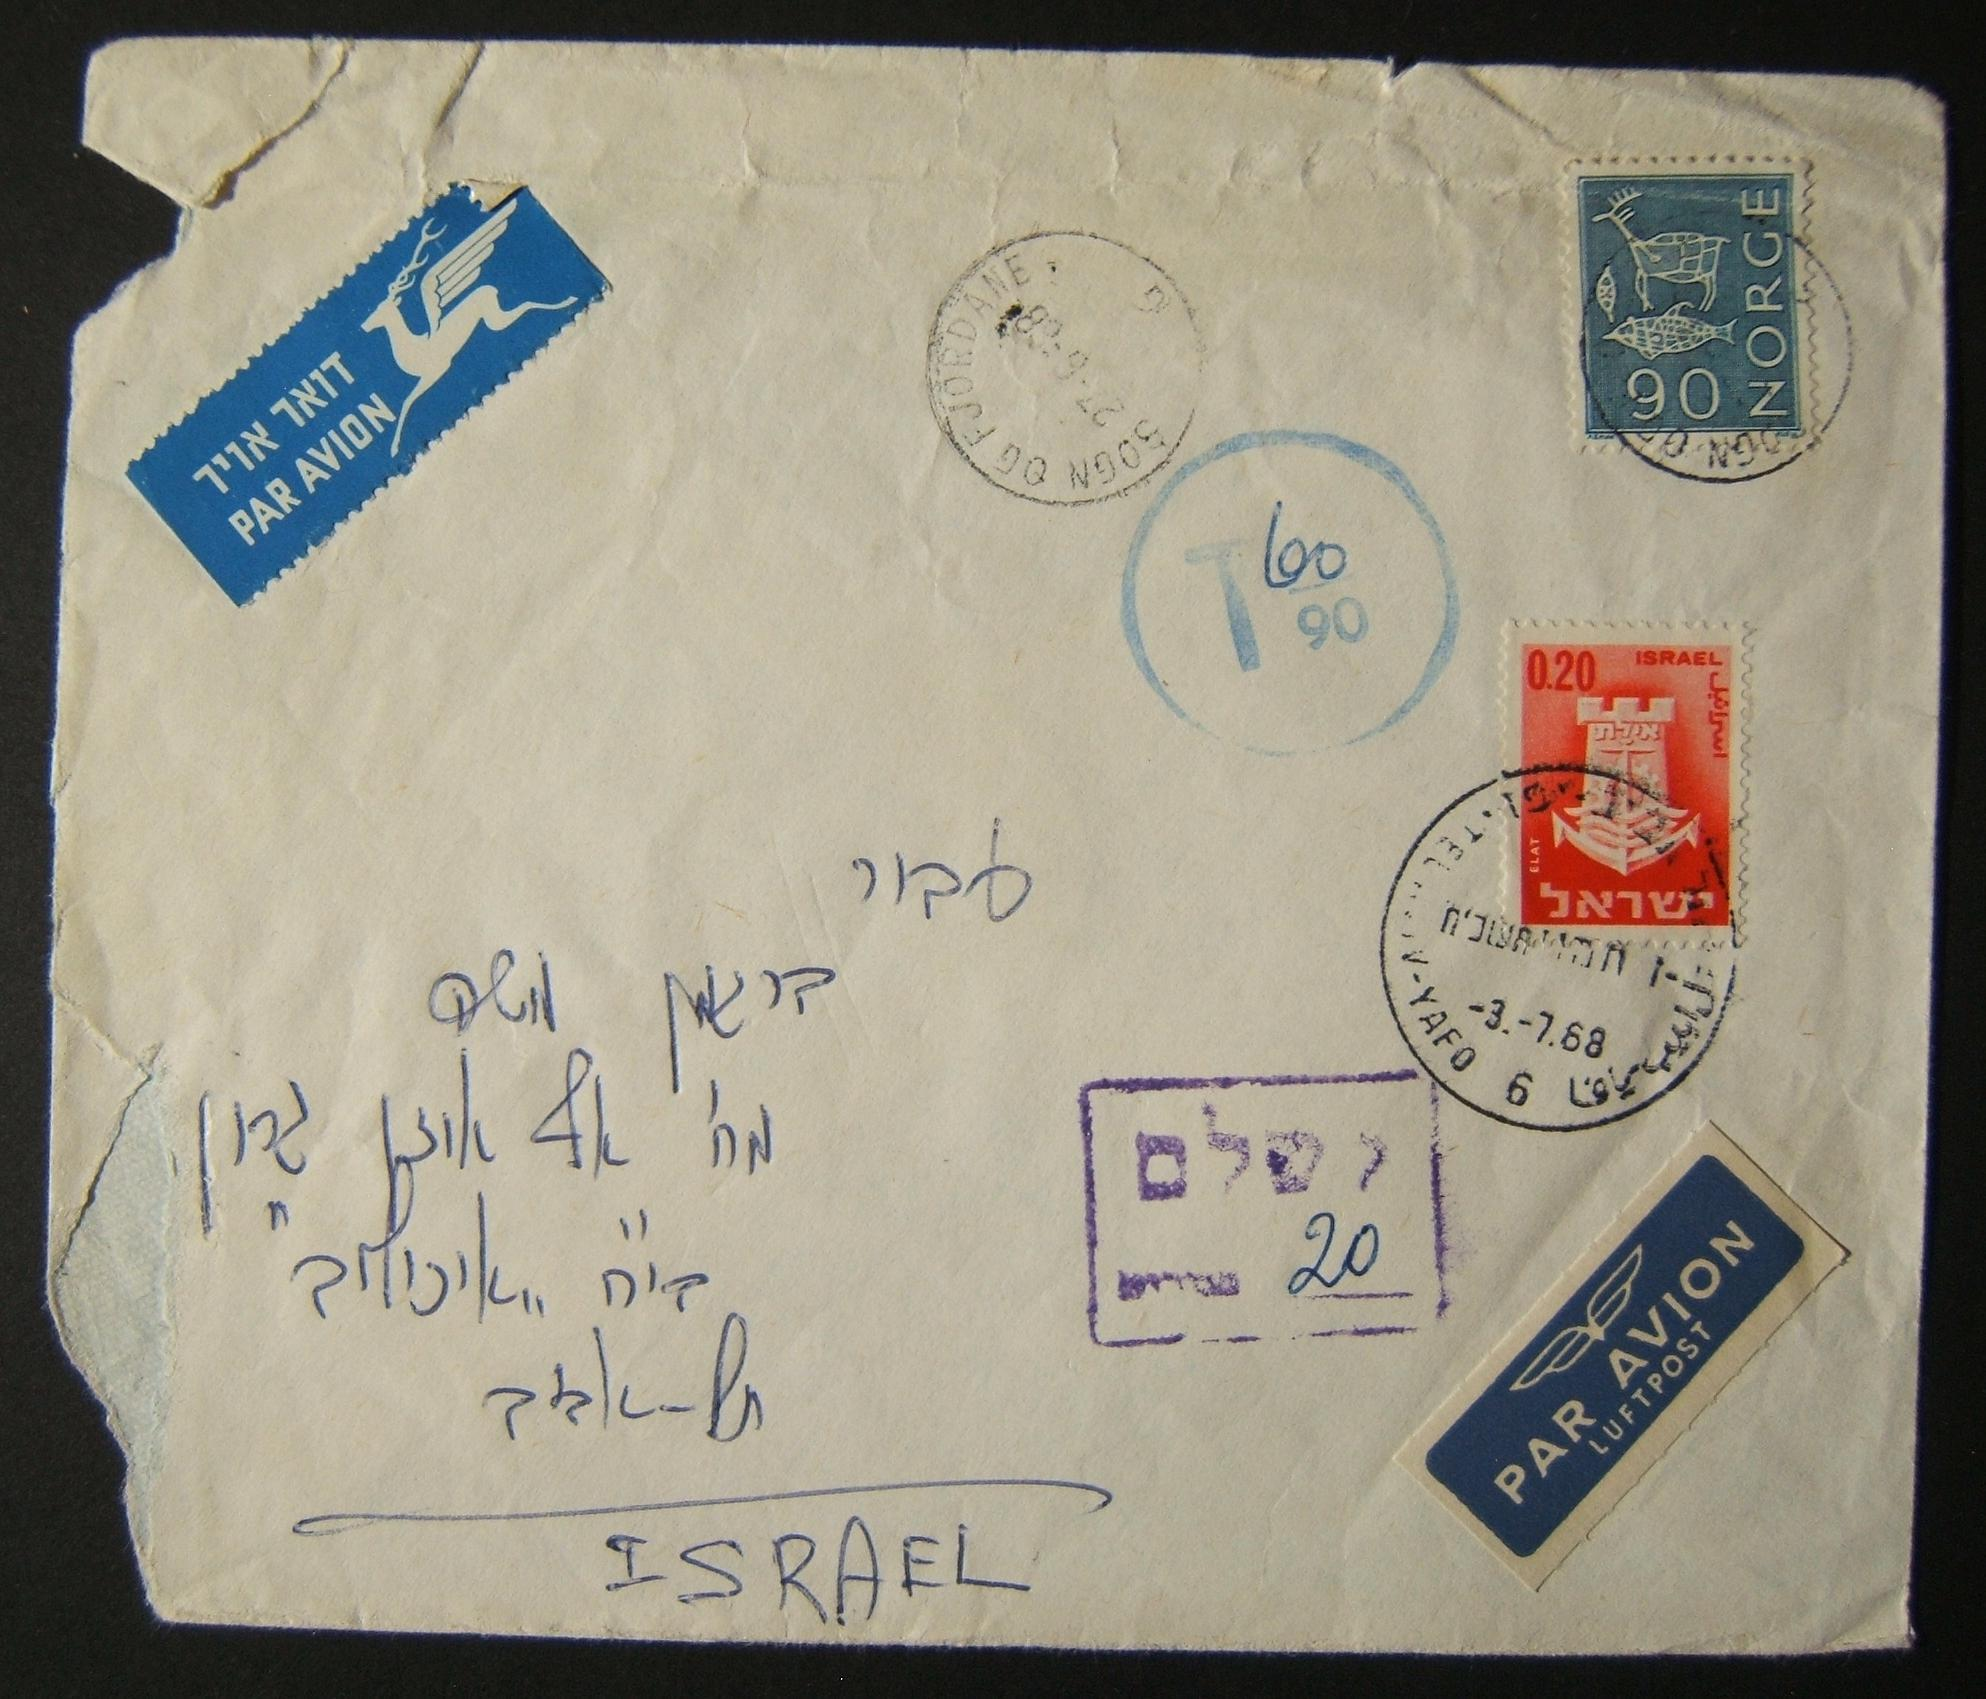 1968 incoming Norwegian taxed mail: 27-6-68 airmail commercial cover ex NORWAY to Ichilov Hospital TLV underfranked at 0.90Kr and taxed 0.20L in Israel, paid 3-7-68 using 1965/67 1